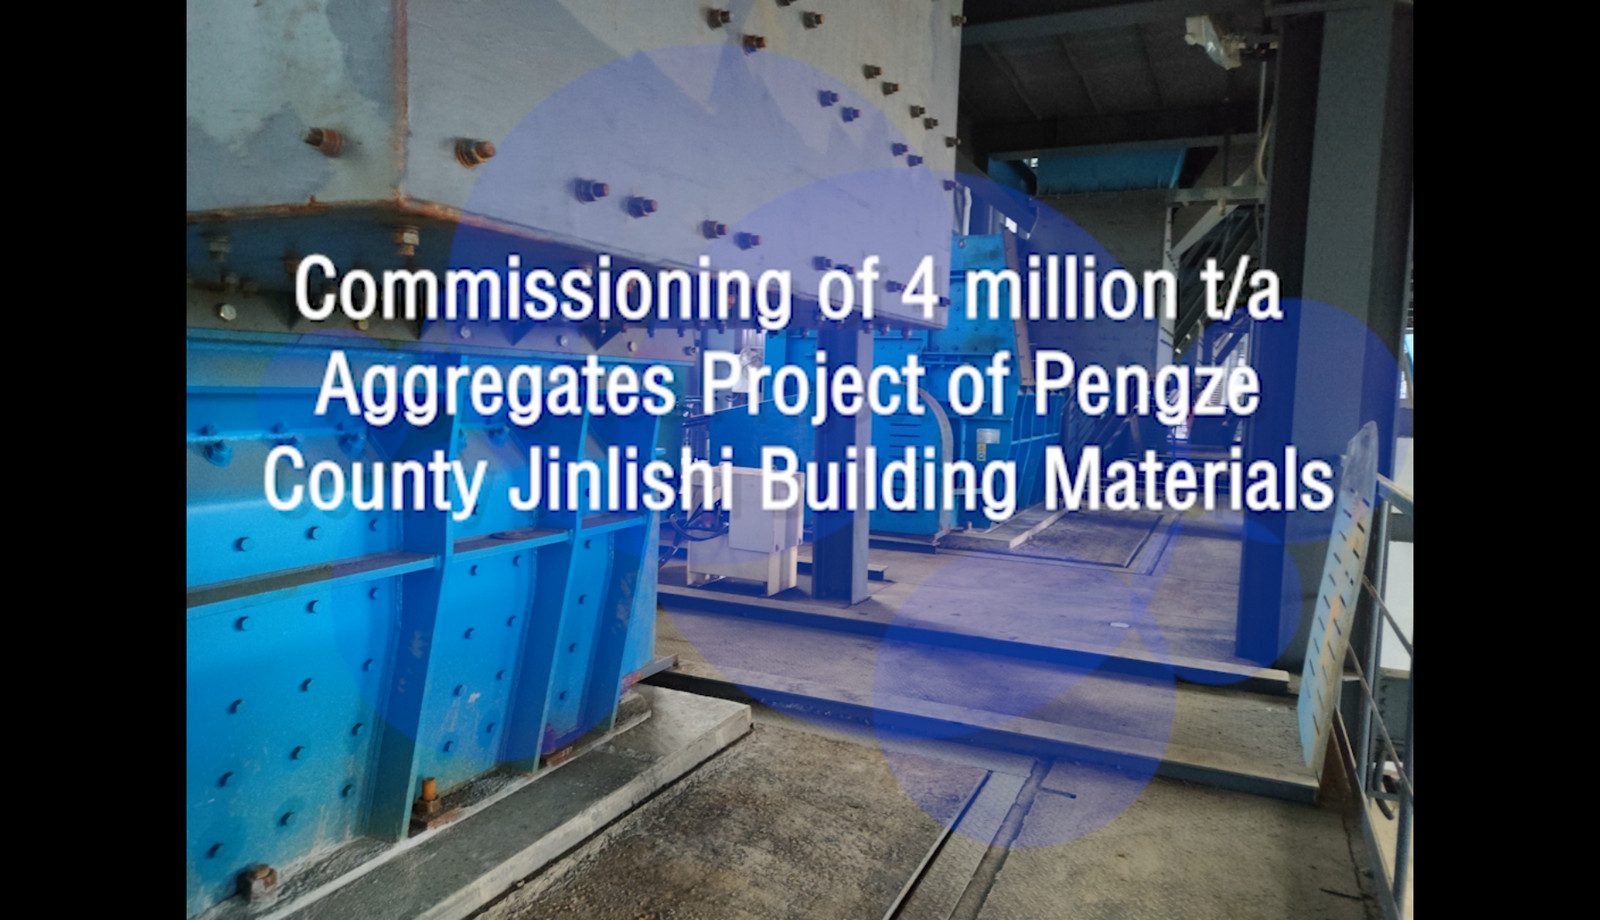 Commissioning of 4 million t/a Aggregates Project of Pengze County Jinlishi Building Materials